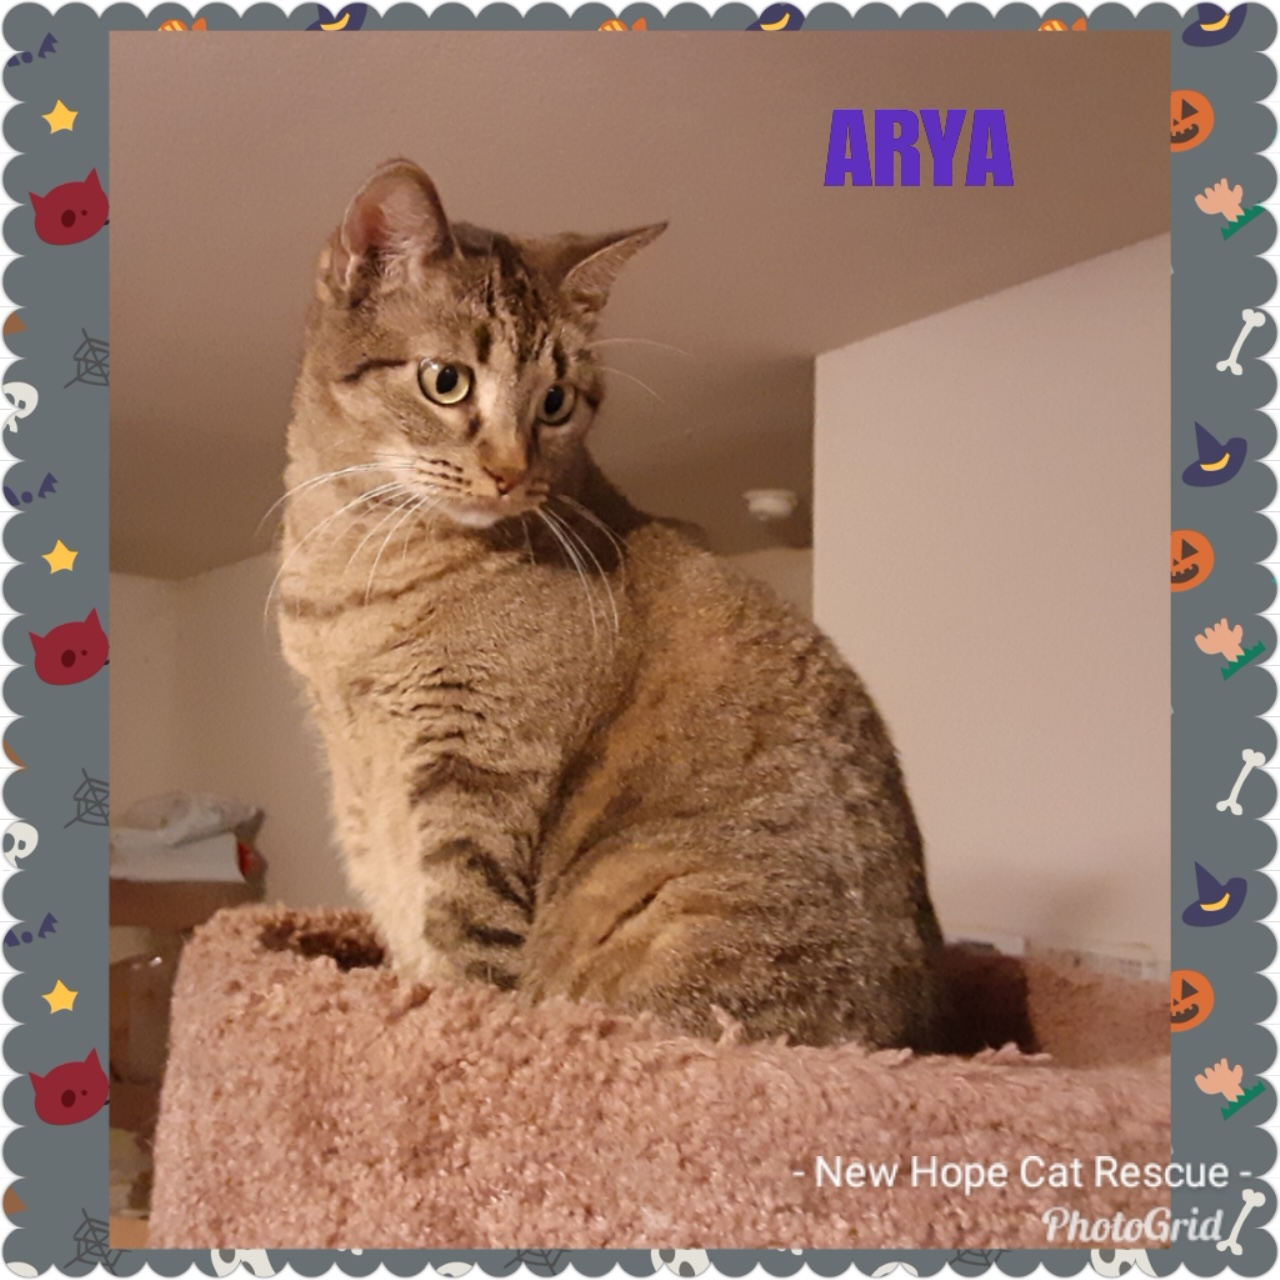 Arya - New Hope Cat Rescue